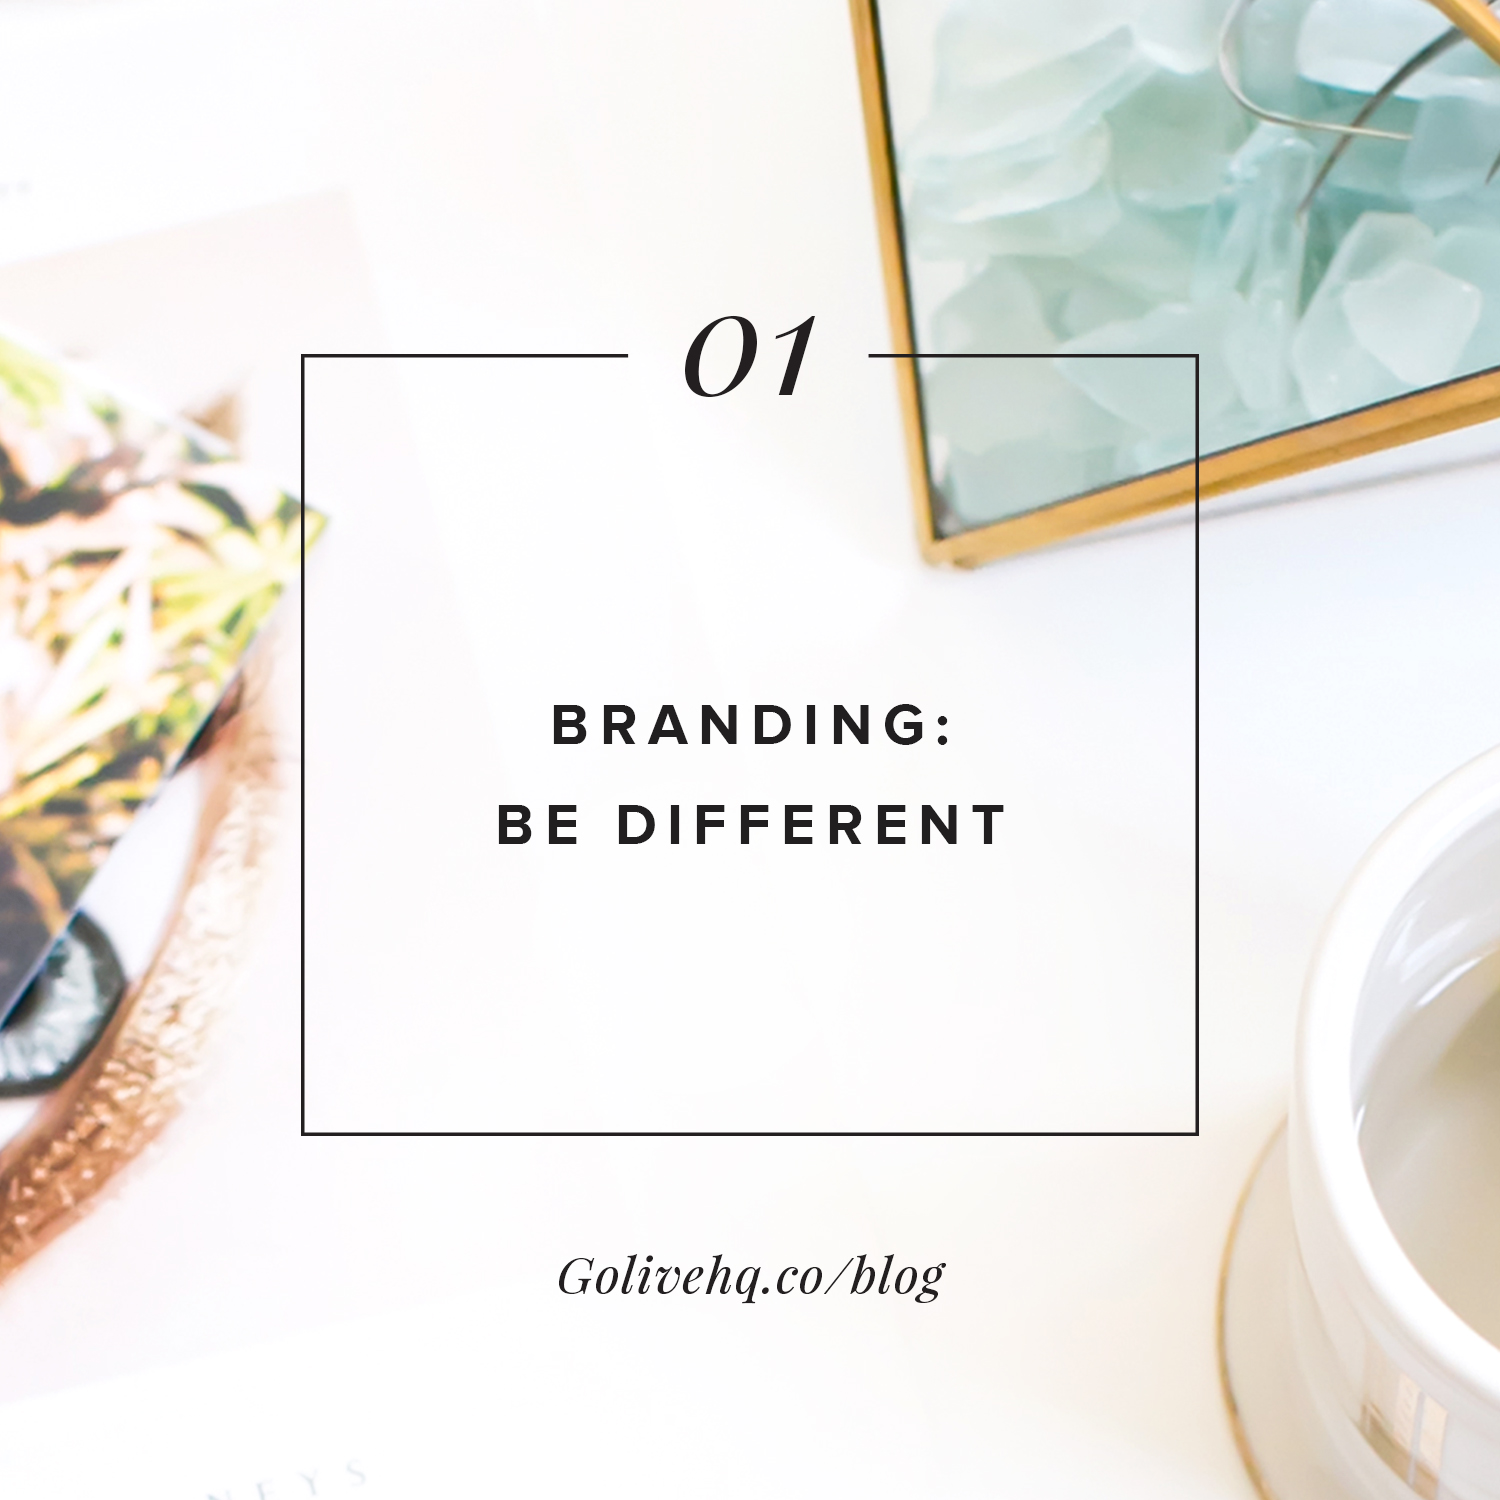 tip on branding by golivehq.co